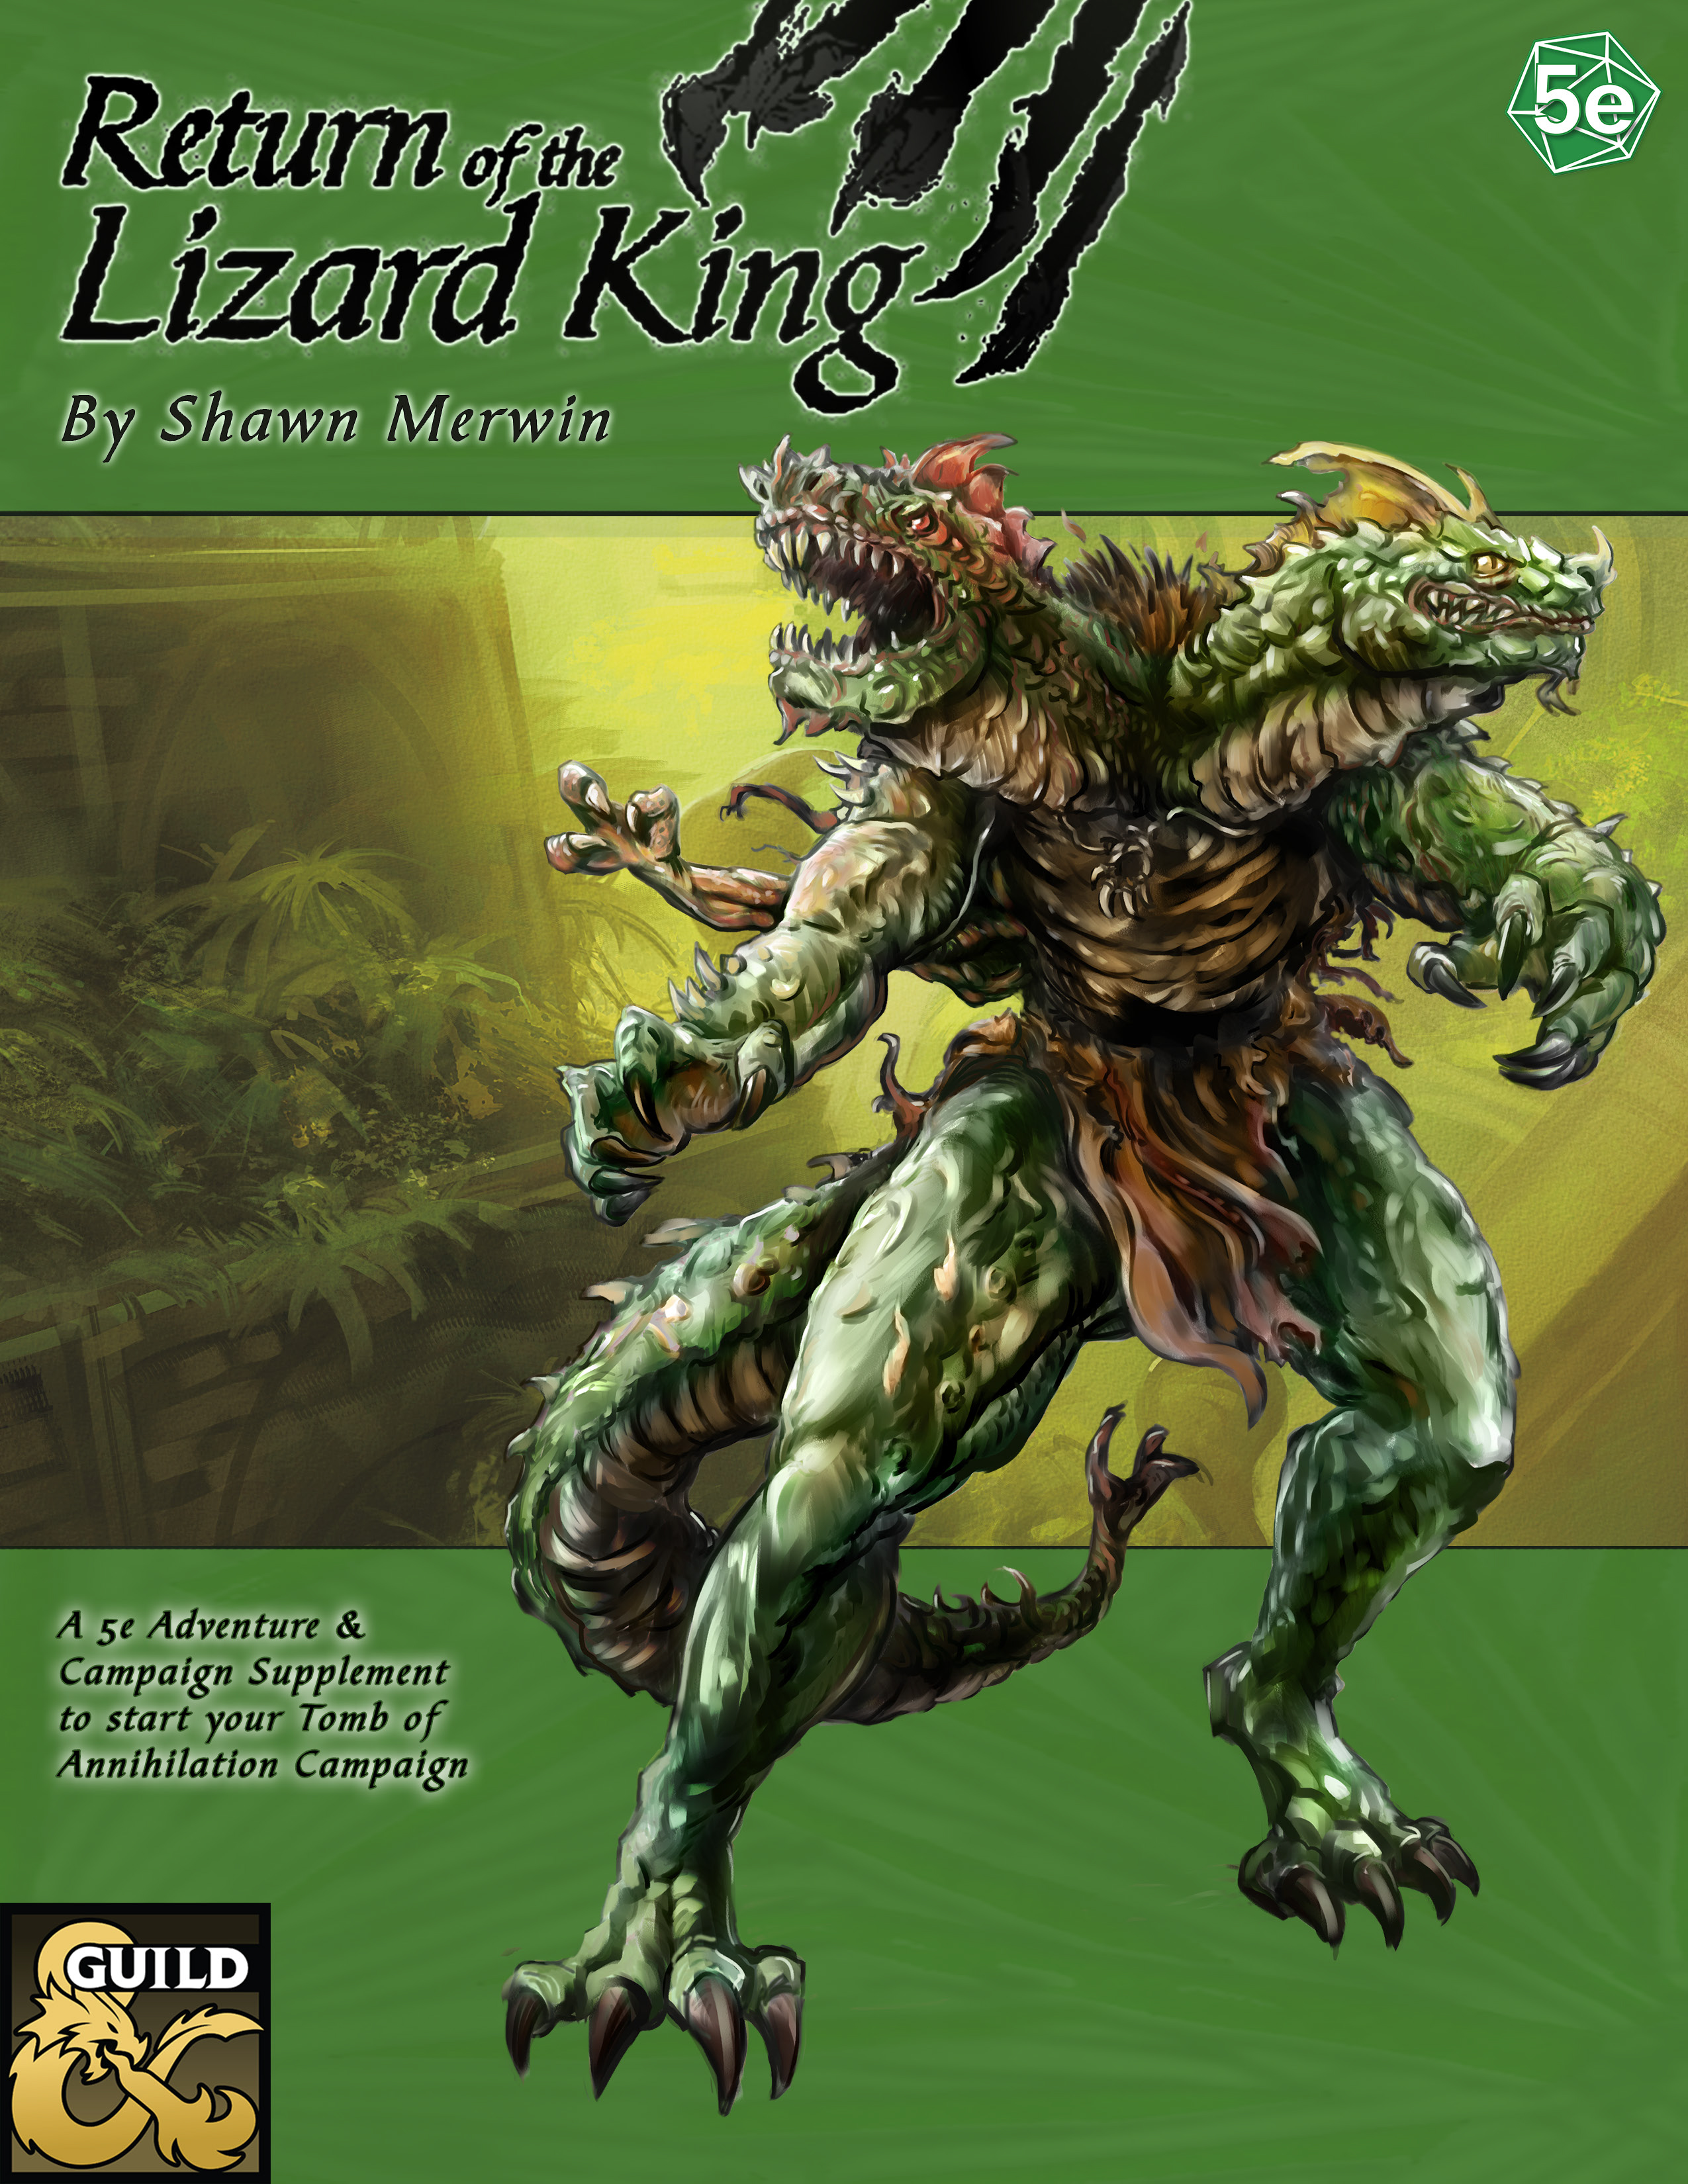 Encoded Designs | The Return of the Lizard King